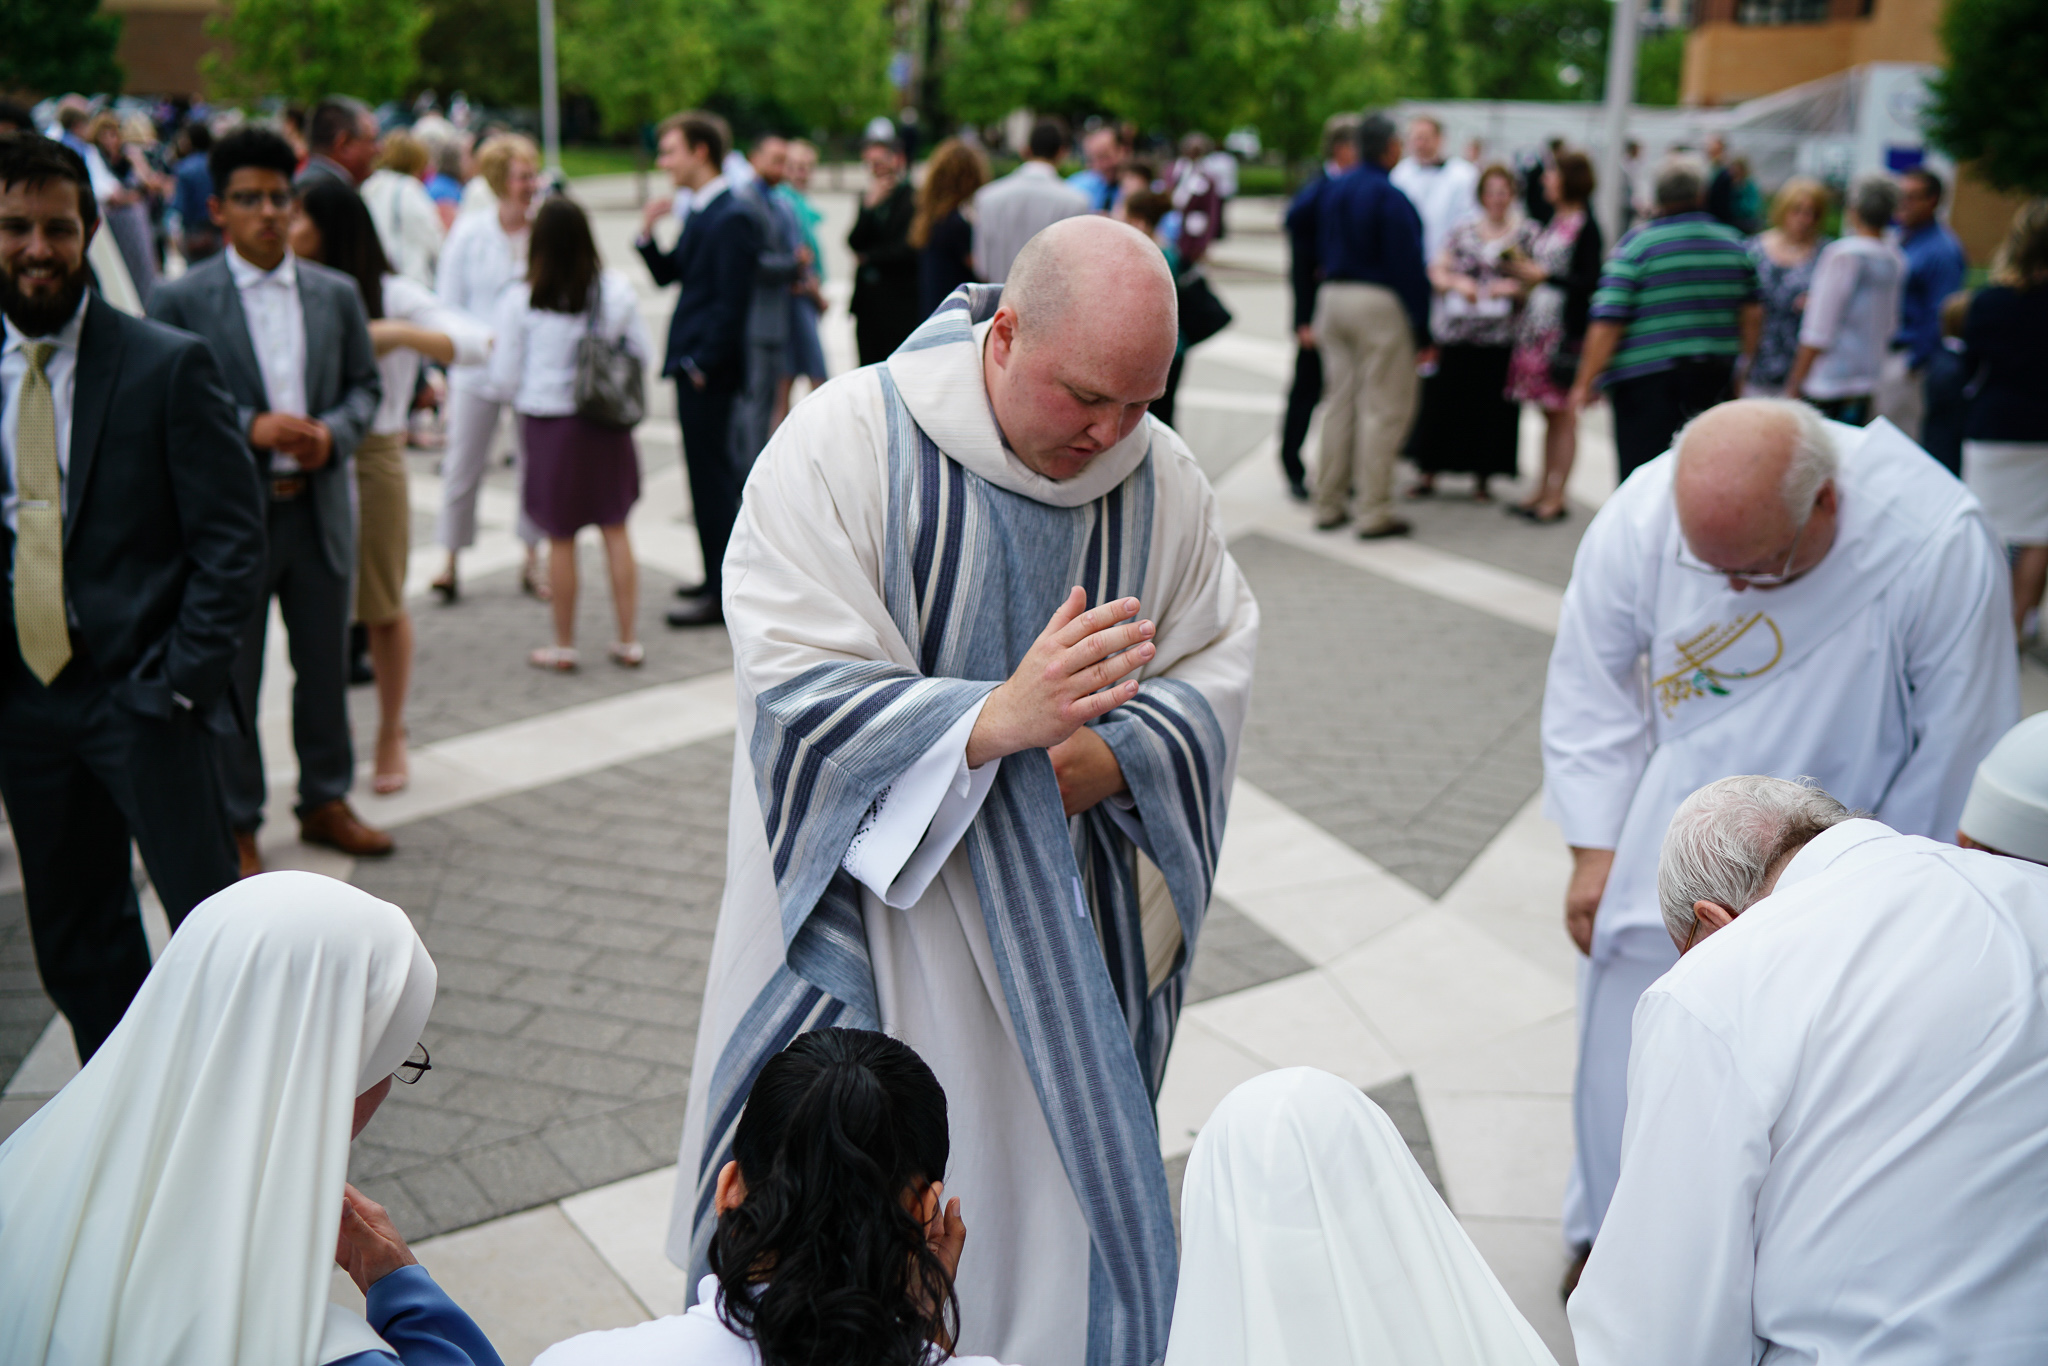 father stephen durkee gives a blessing to the crowd following his ordination to the priesthood